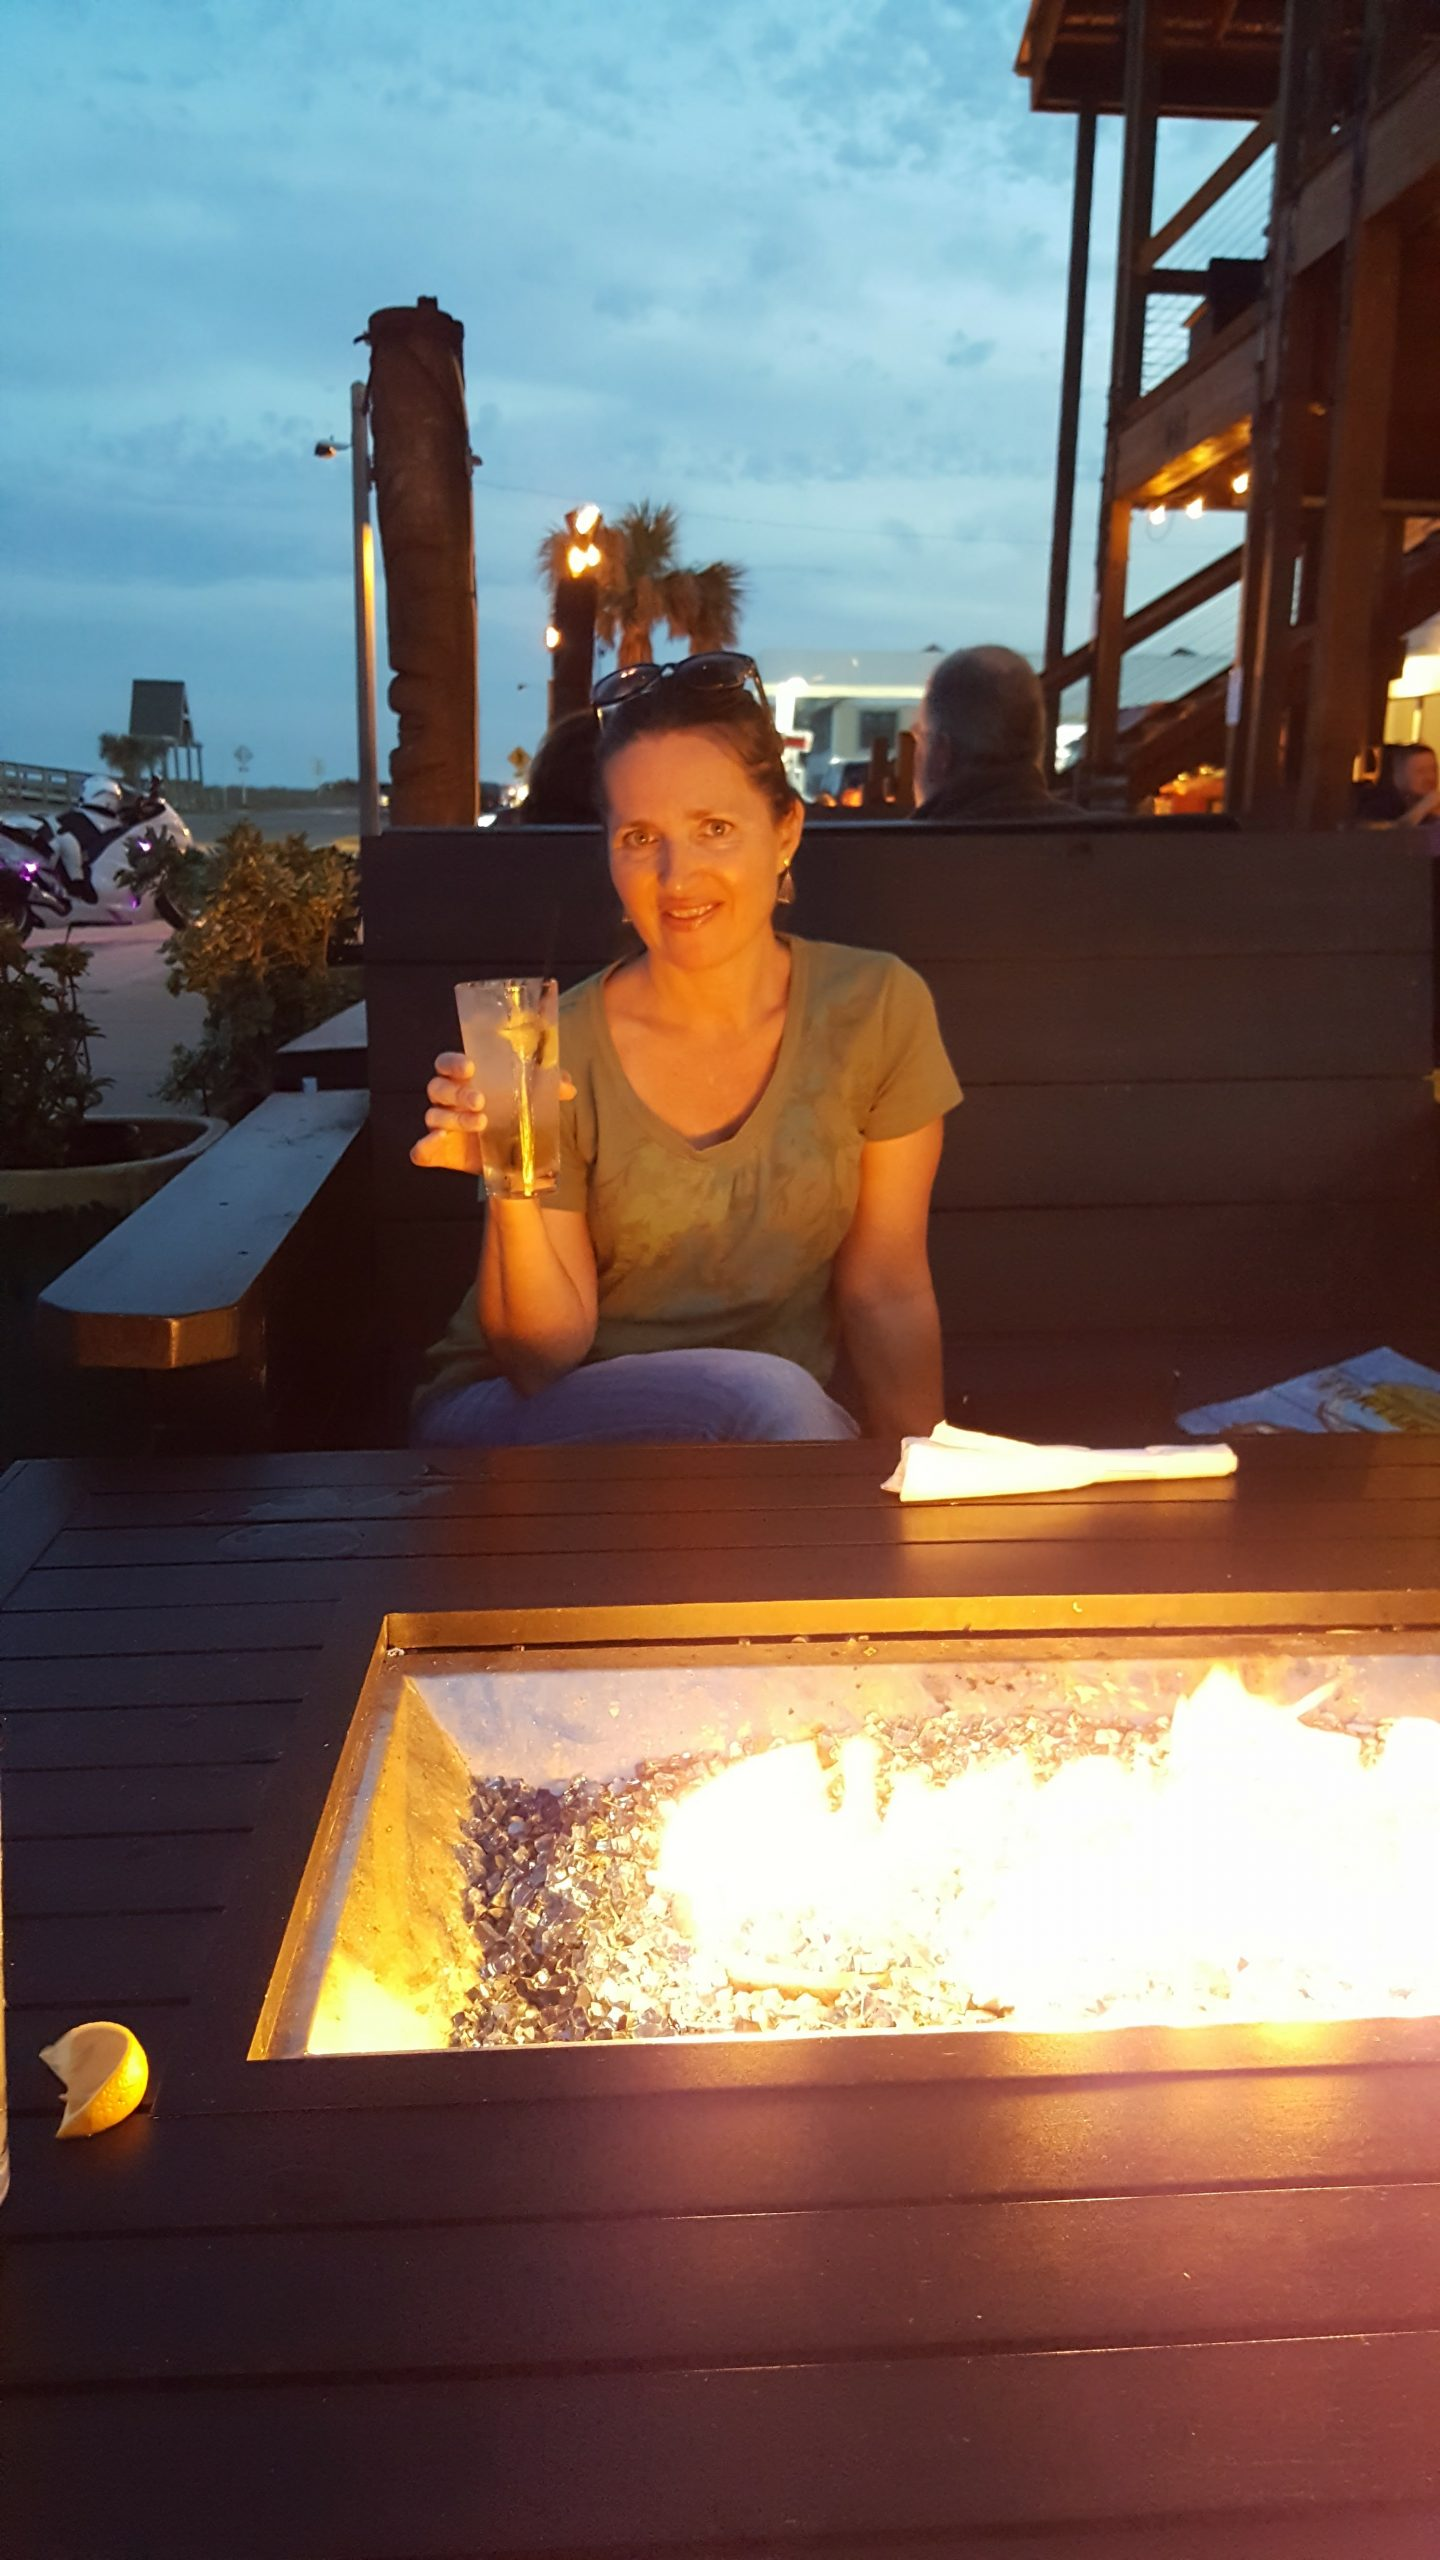 shows Donnamarie at a fireside table with a cocktail